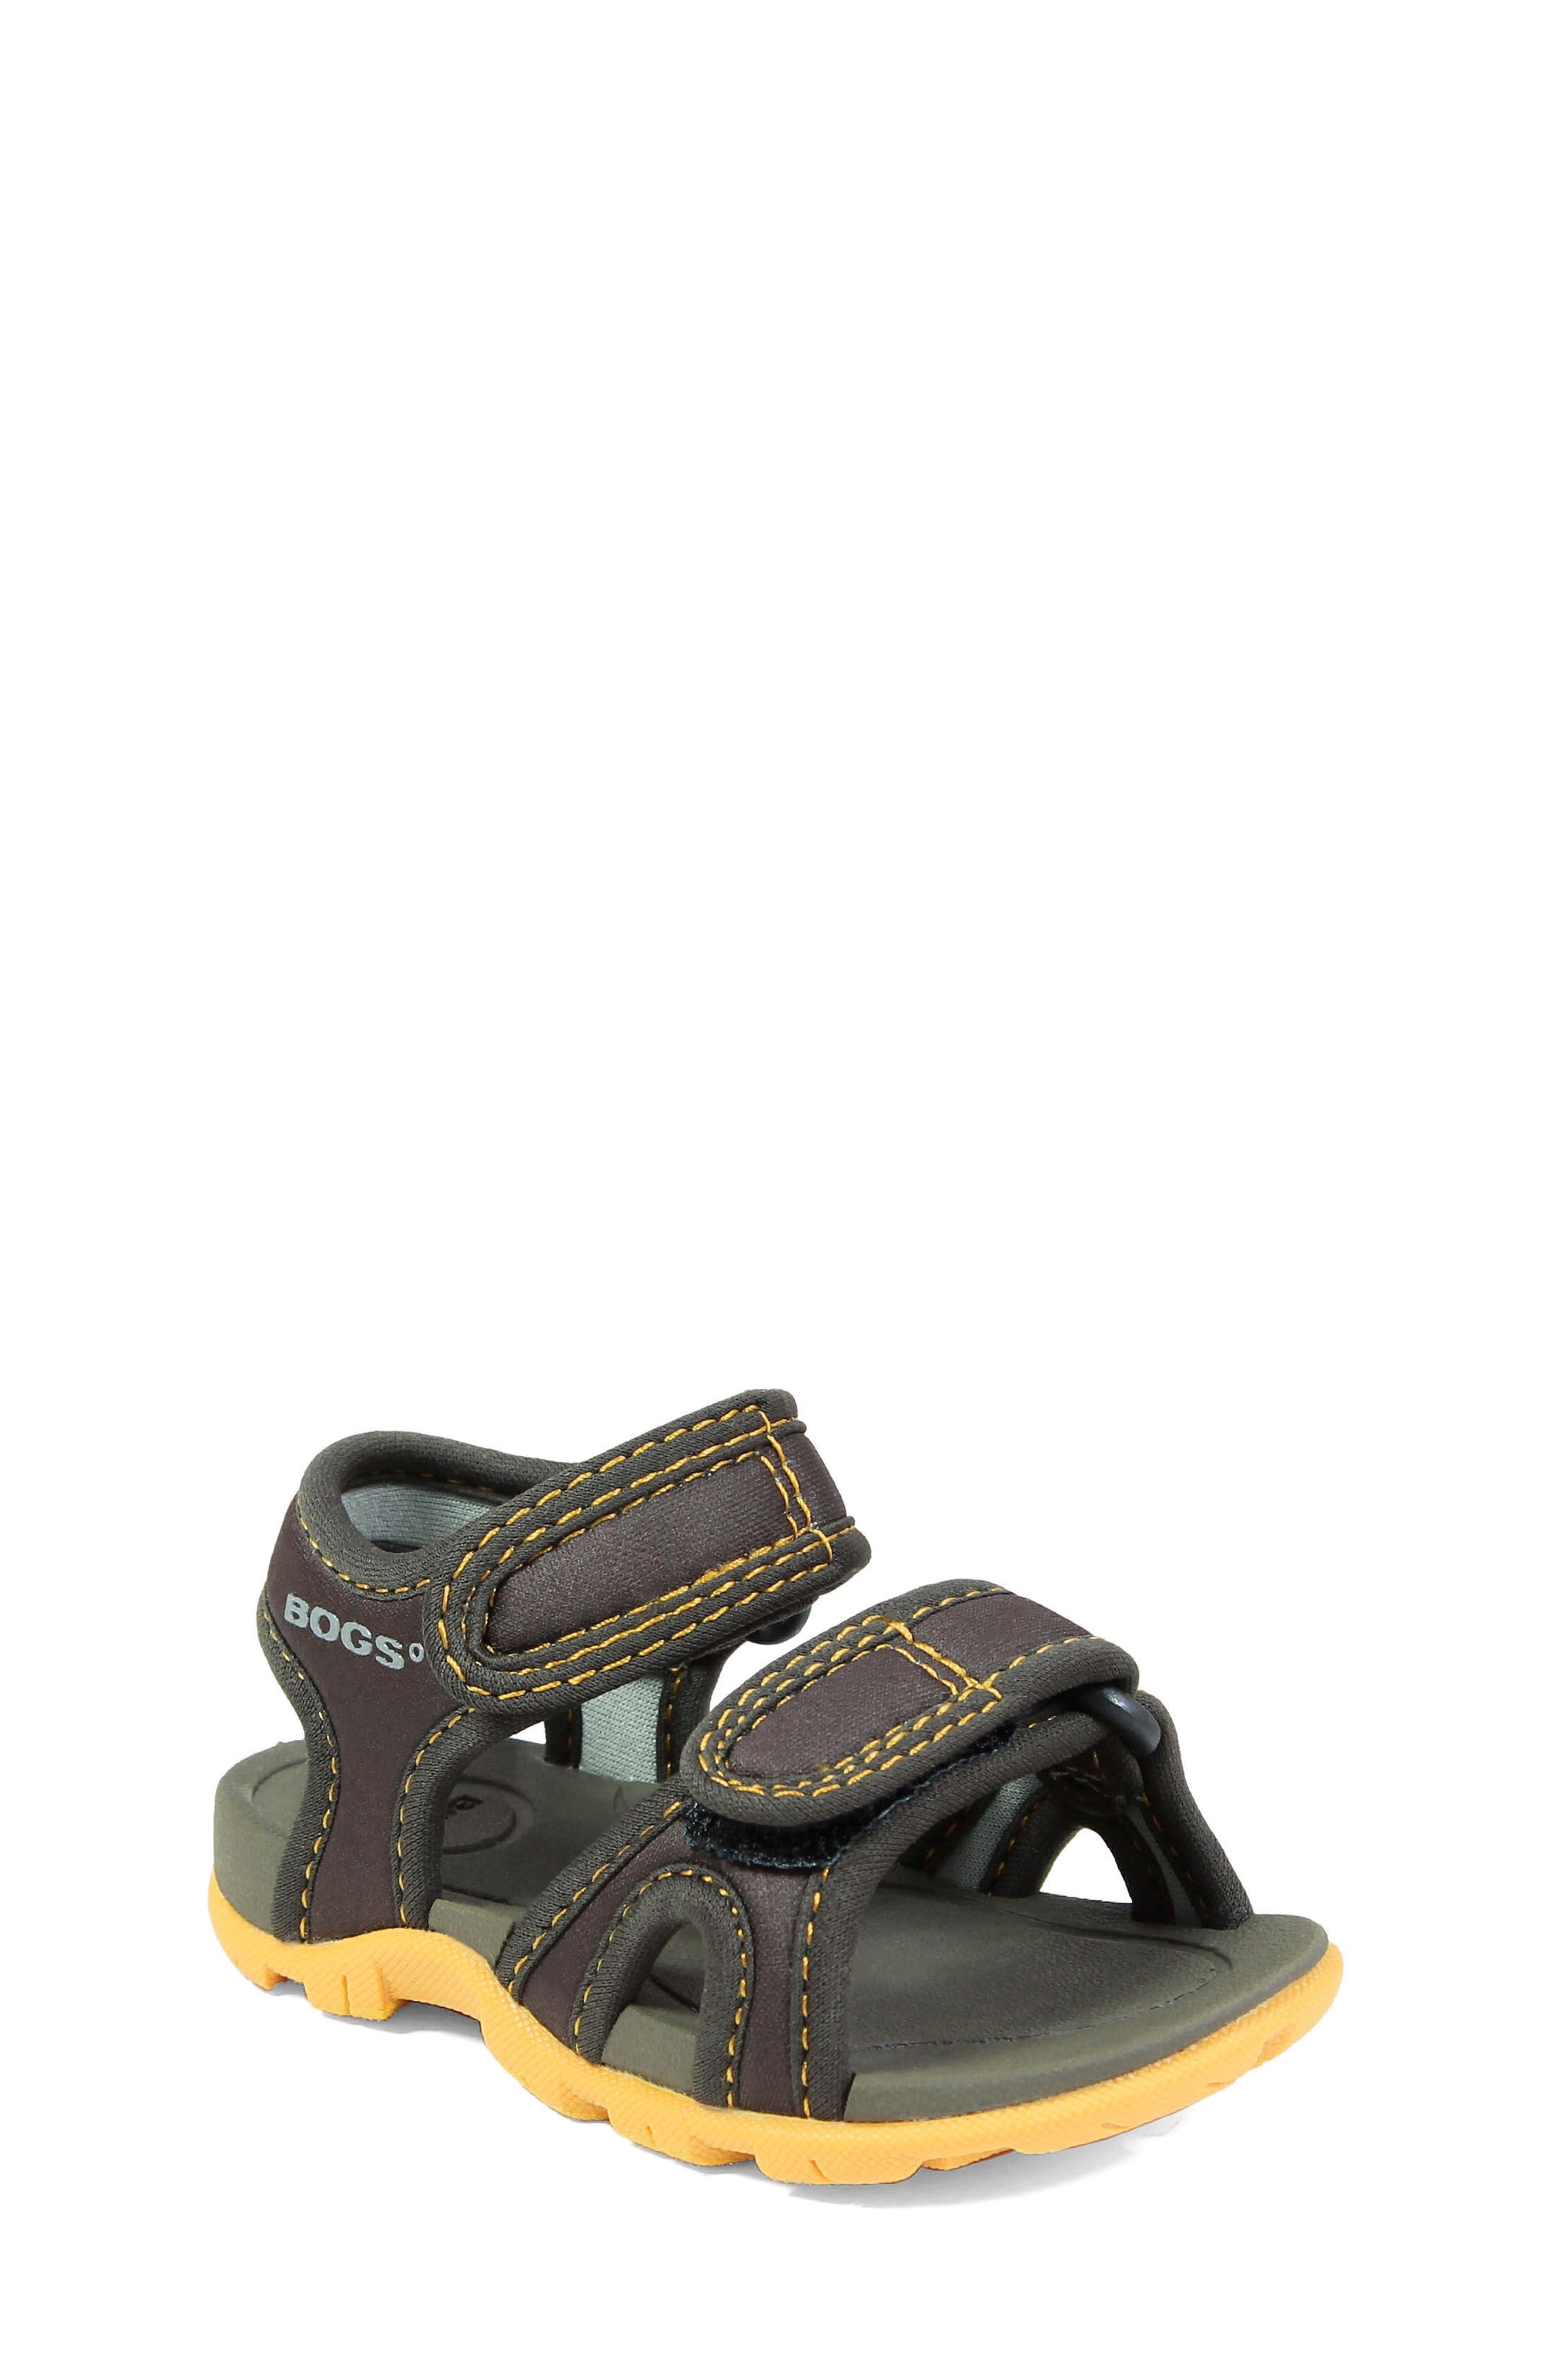 Whitefish Waterproof Sandal,                             Main thumbnail 1, color,                             OLIVE MULTI